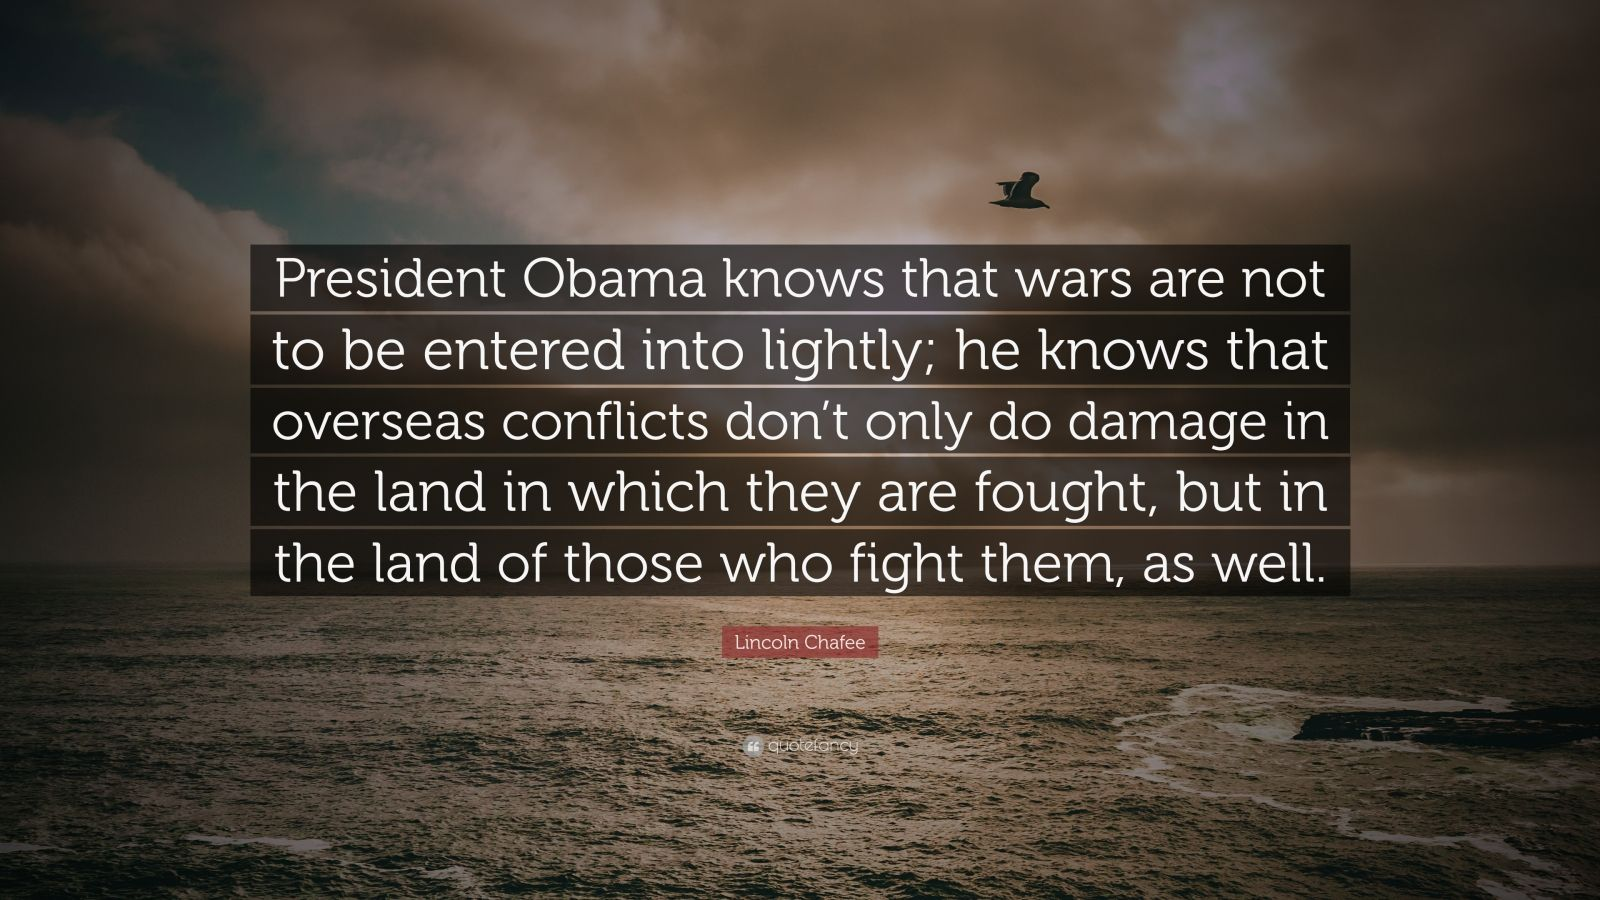 "Lincoln Chafee Quote: ""President Obama knows that wars are not to be entered into lightly; he knows that overseas conflicts don't only do damage in the land in which they are fought, but in the land of those who fight them, as well."""